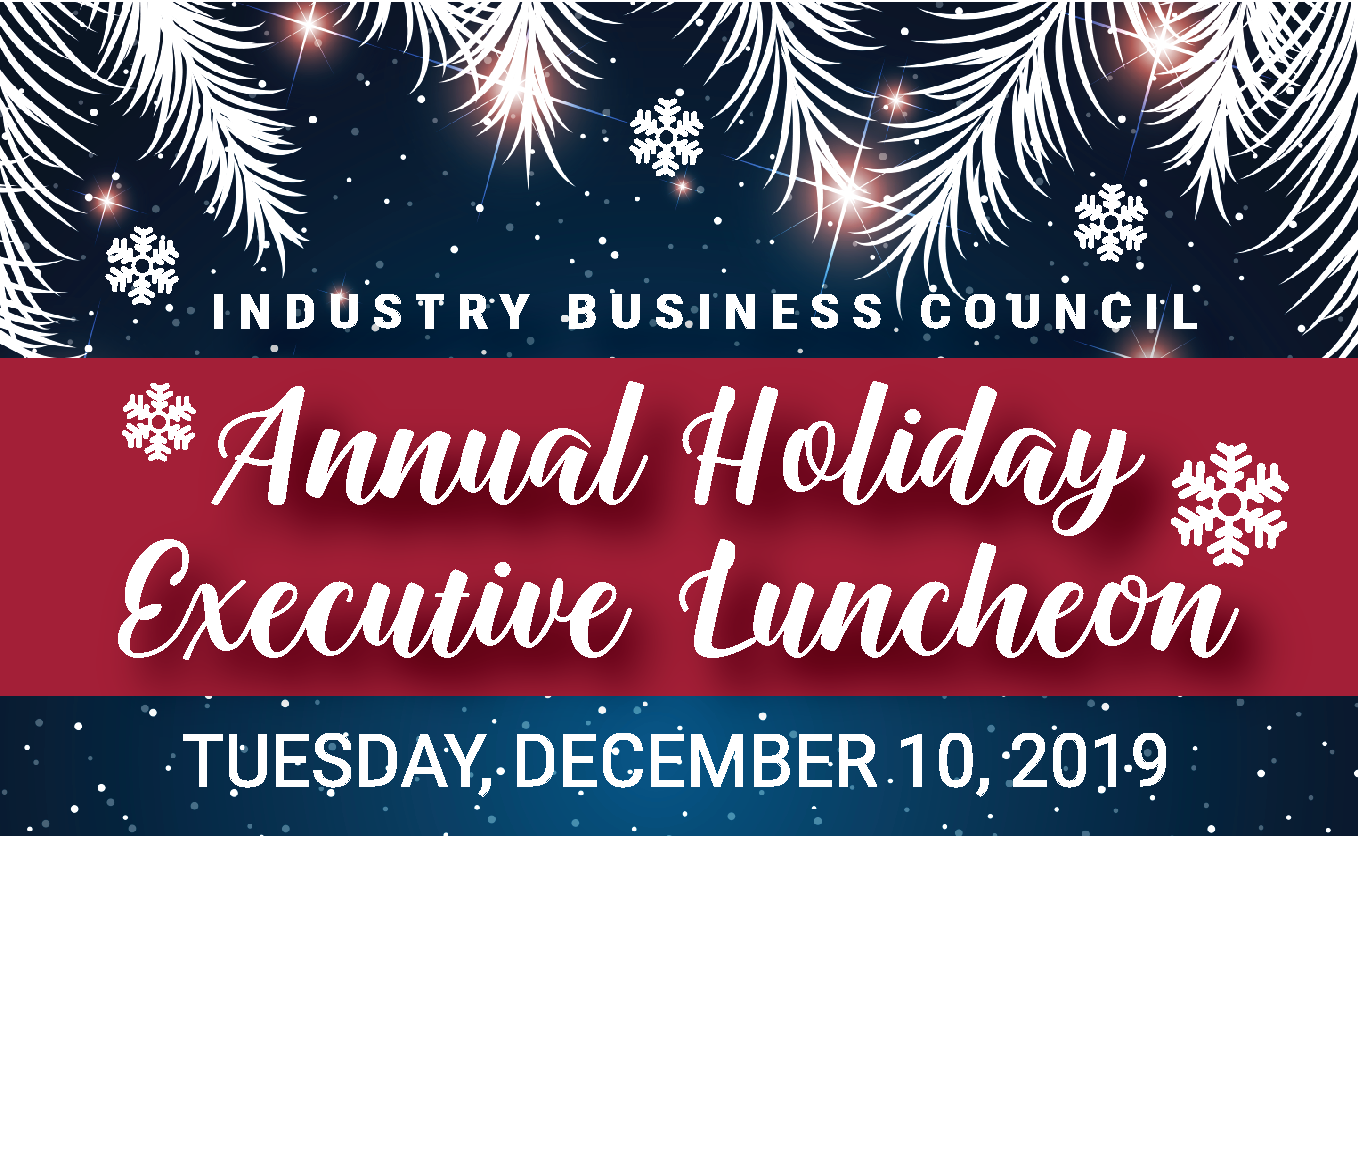 2019 Annual Holiday Executive Luncheon | Dec 10, 2019